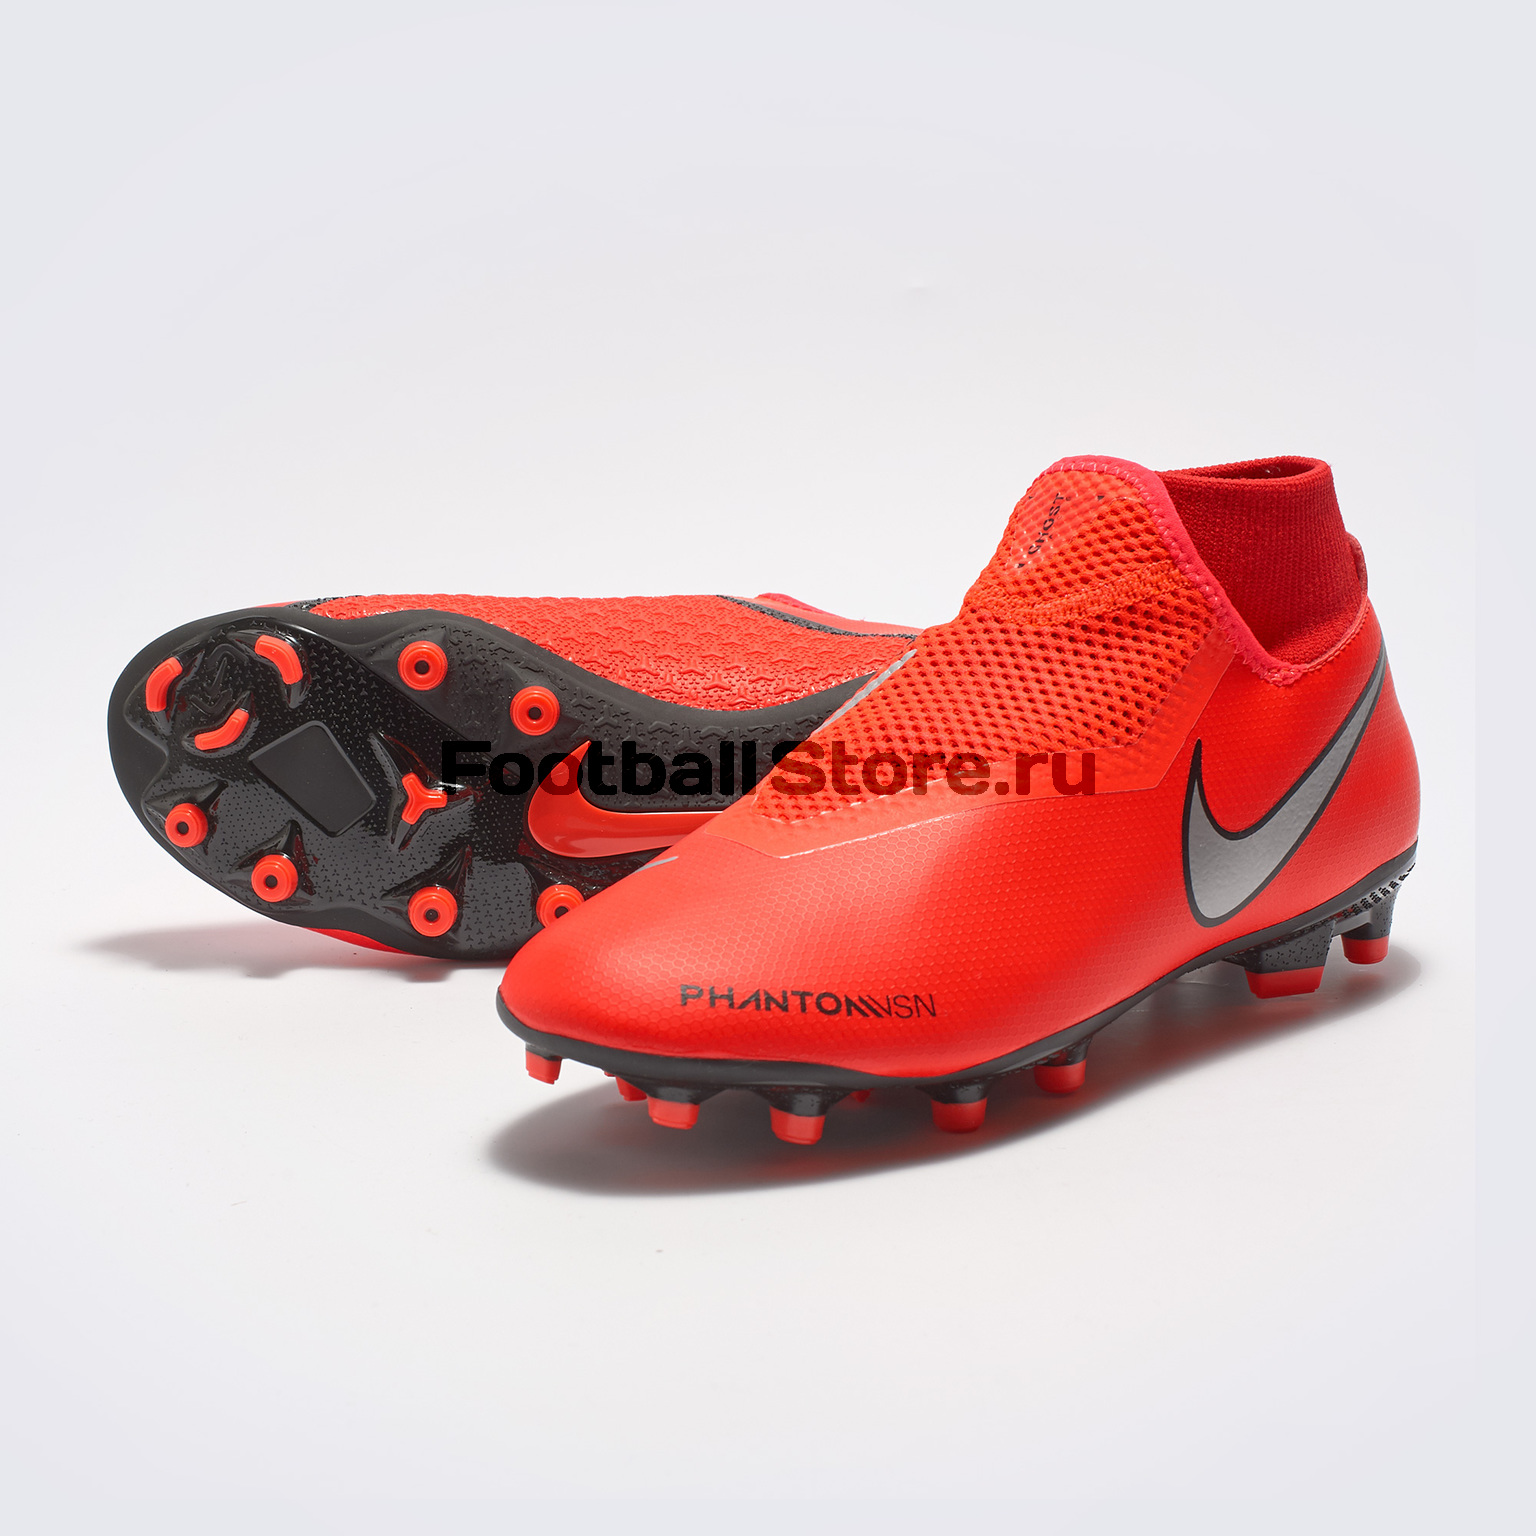 Бутсы Nike Phantom 3 Academy DF MG AO3258-600